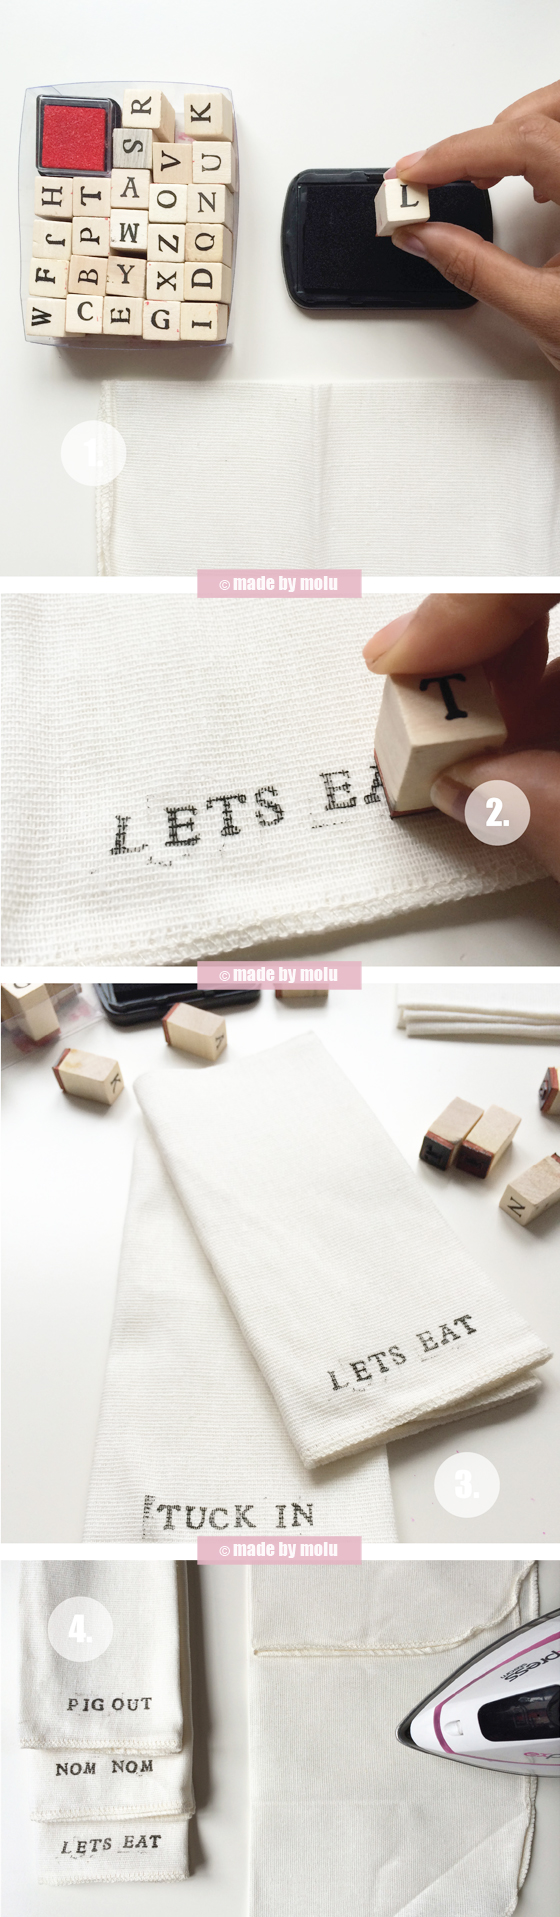 MbM_DIY-TUTORIAL_STAMPED-NAPKINS_